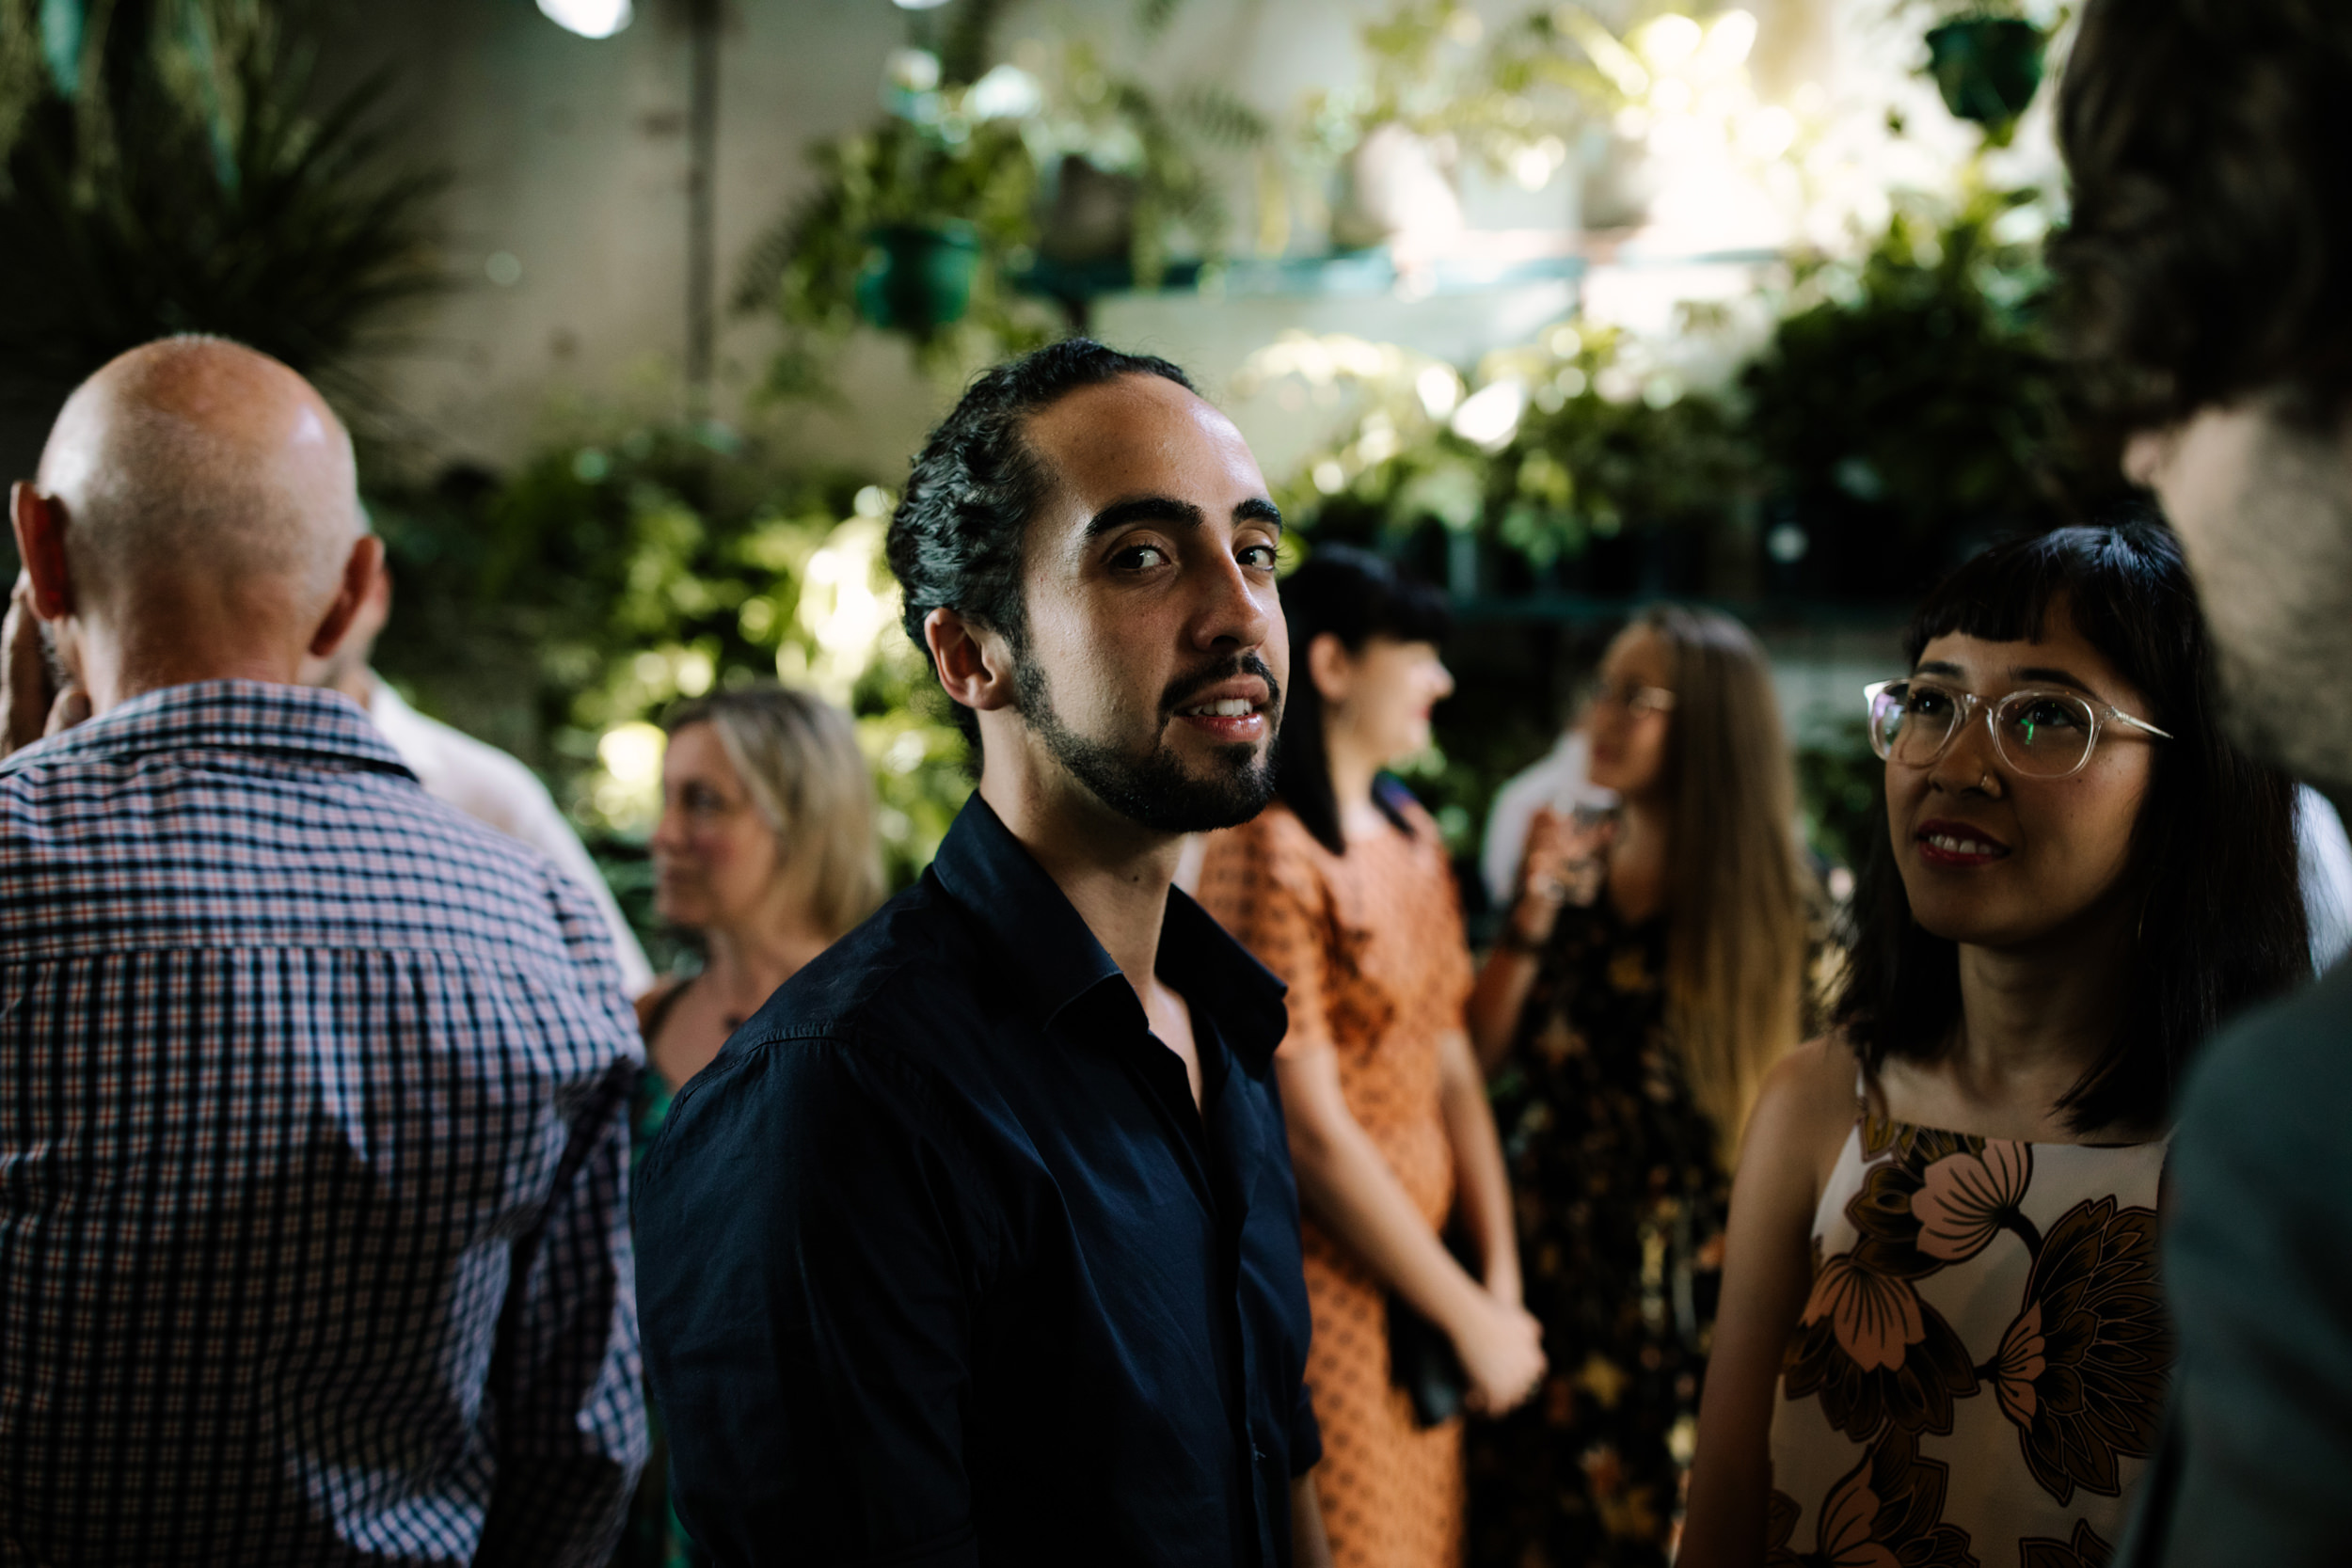 I_Got_You_Babe_Weddings_Emily_Matt_Rupert_Glasshaus_Melbourne0062.JPG